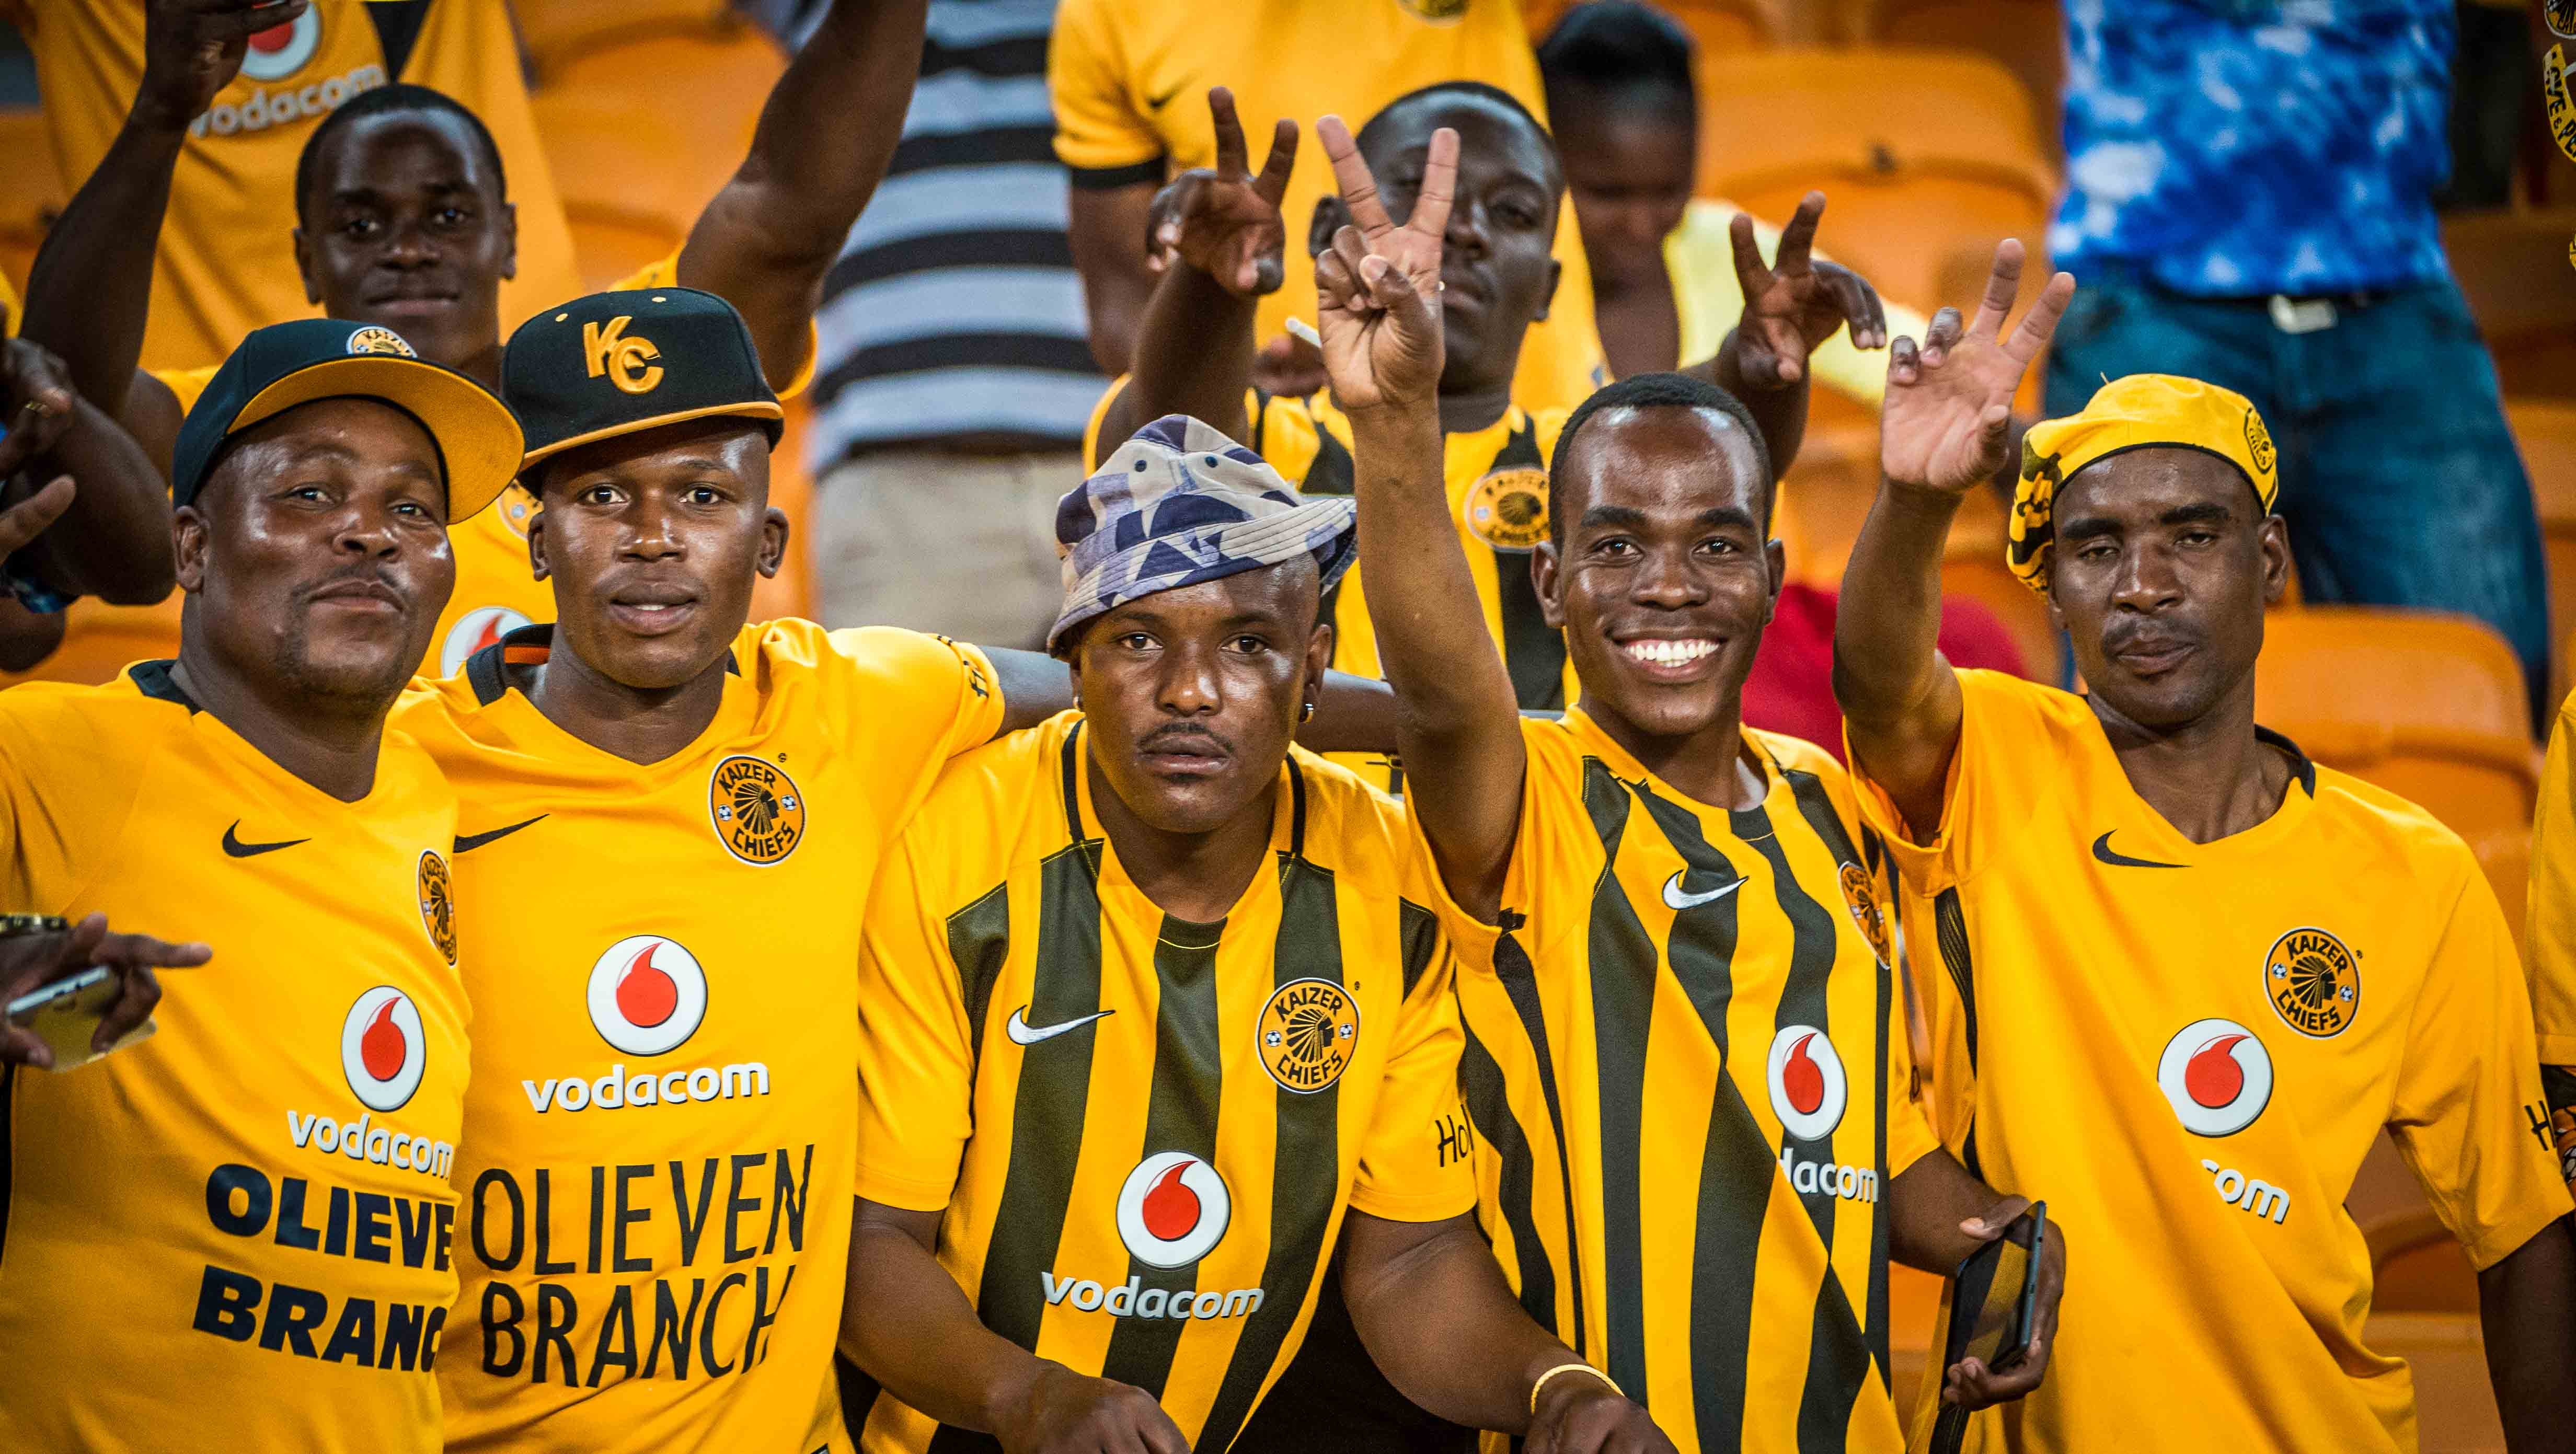 Kaizer Chiefs Fc: Supporters Of Love & Peace